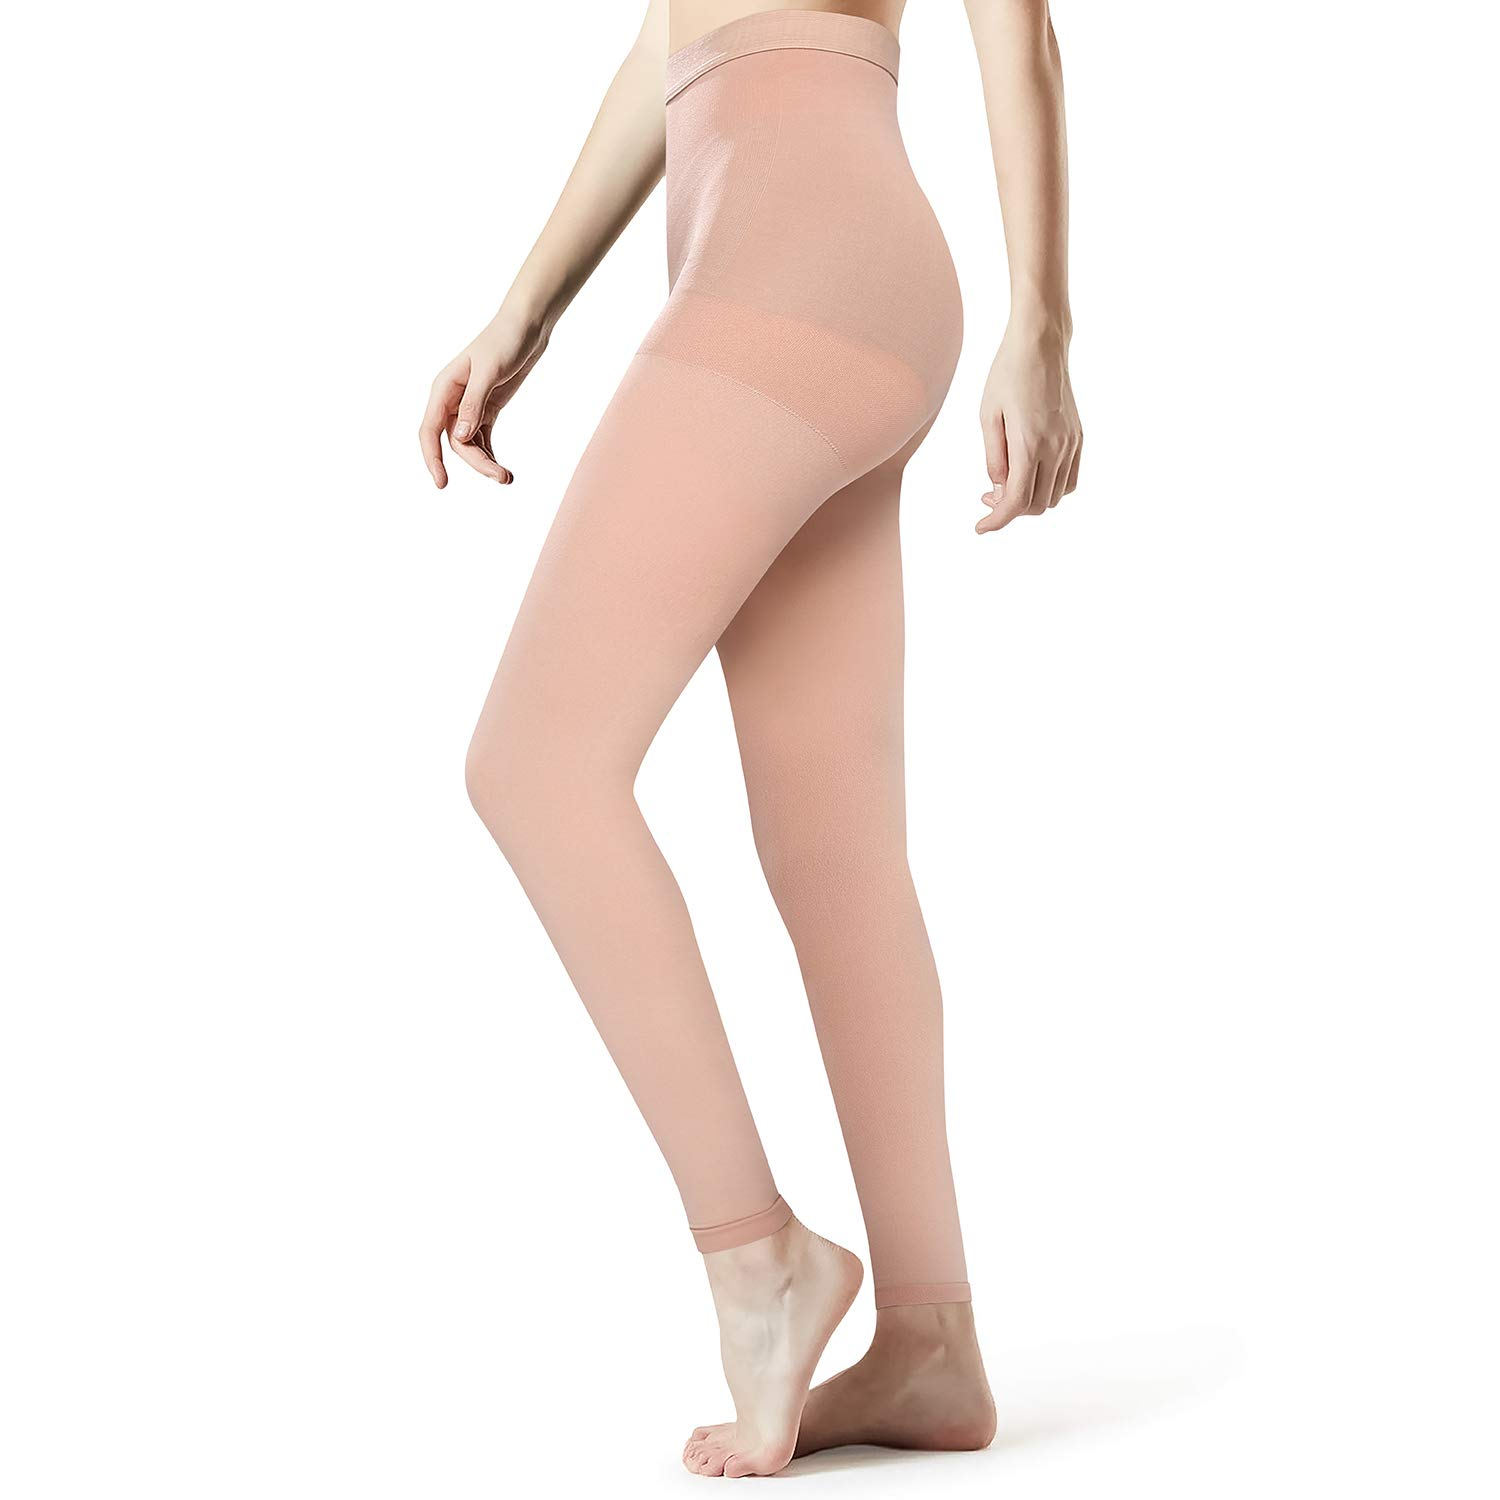 SKYFOXE Medical Grade Compression Pantyhose Women Men- Opaque Footless Compression Stockings Pantyhose Support Patyhose Firm Graduated Support 20-30mmHg Helps Relieve Symptoms of Mild Varicose Veins